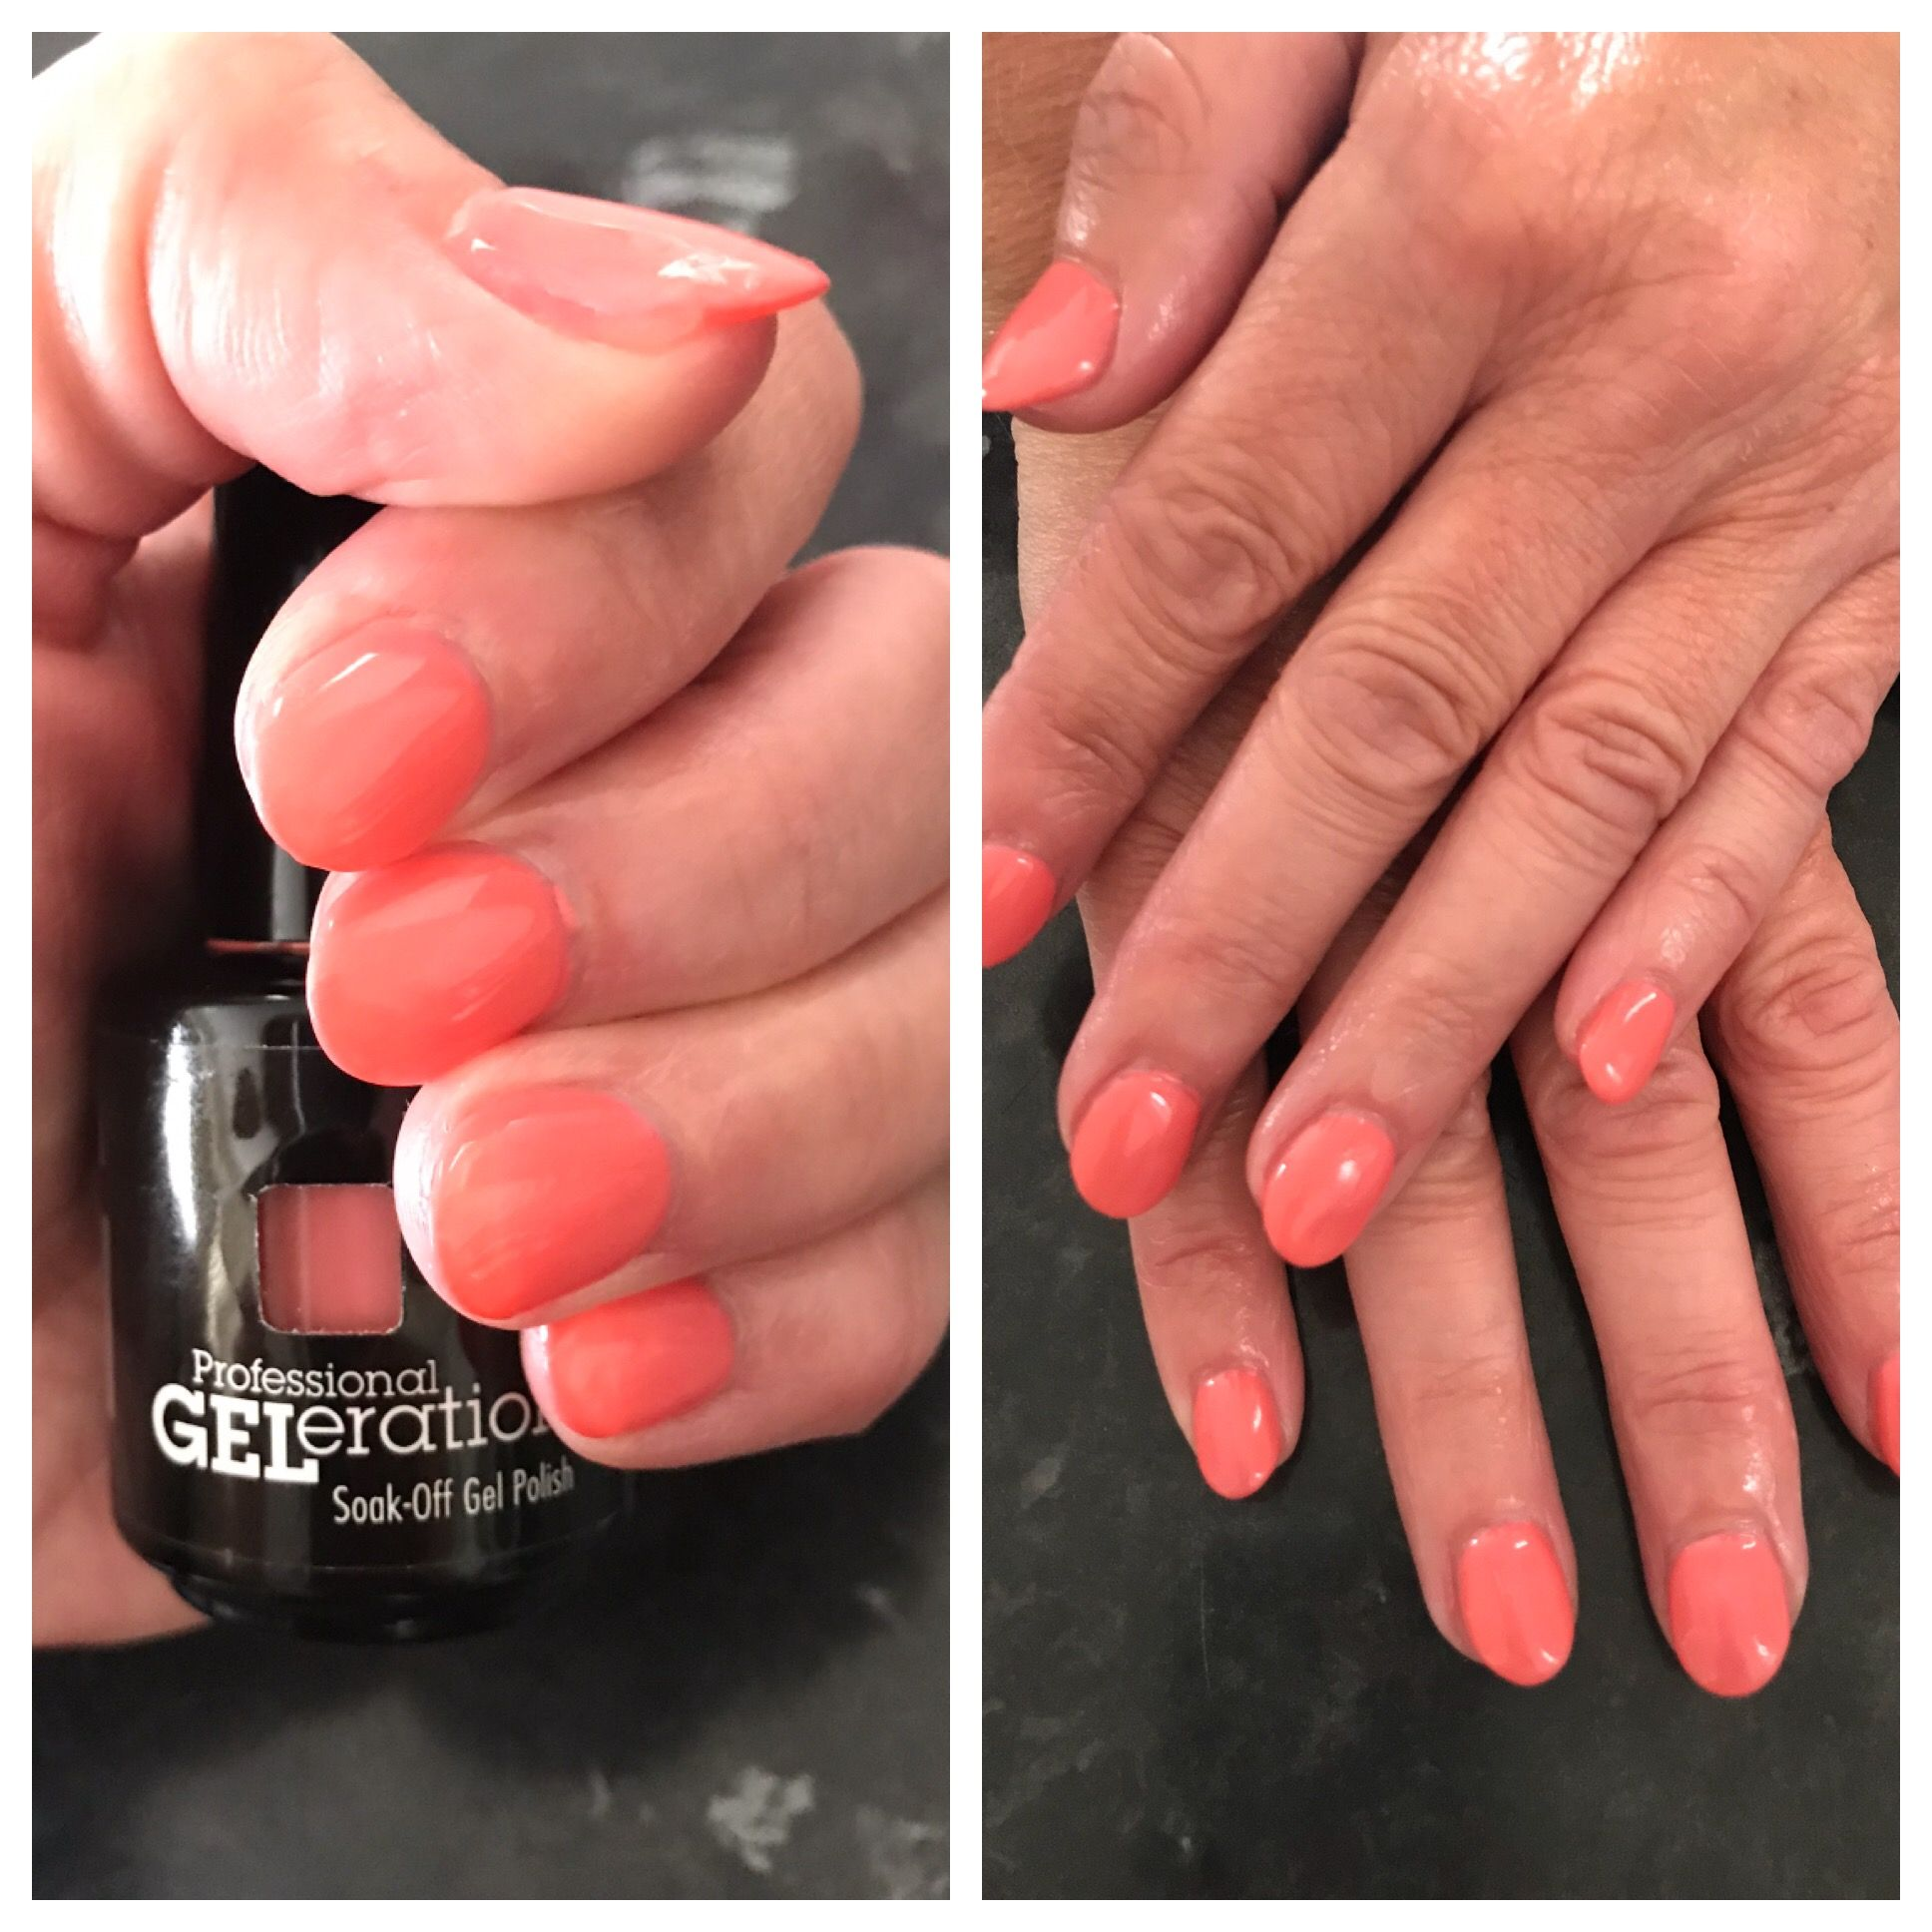 Jessica Geleration Coral Reef 12 50 Purchase From Our Website